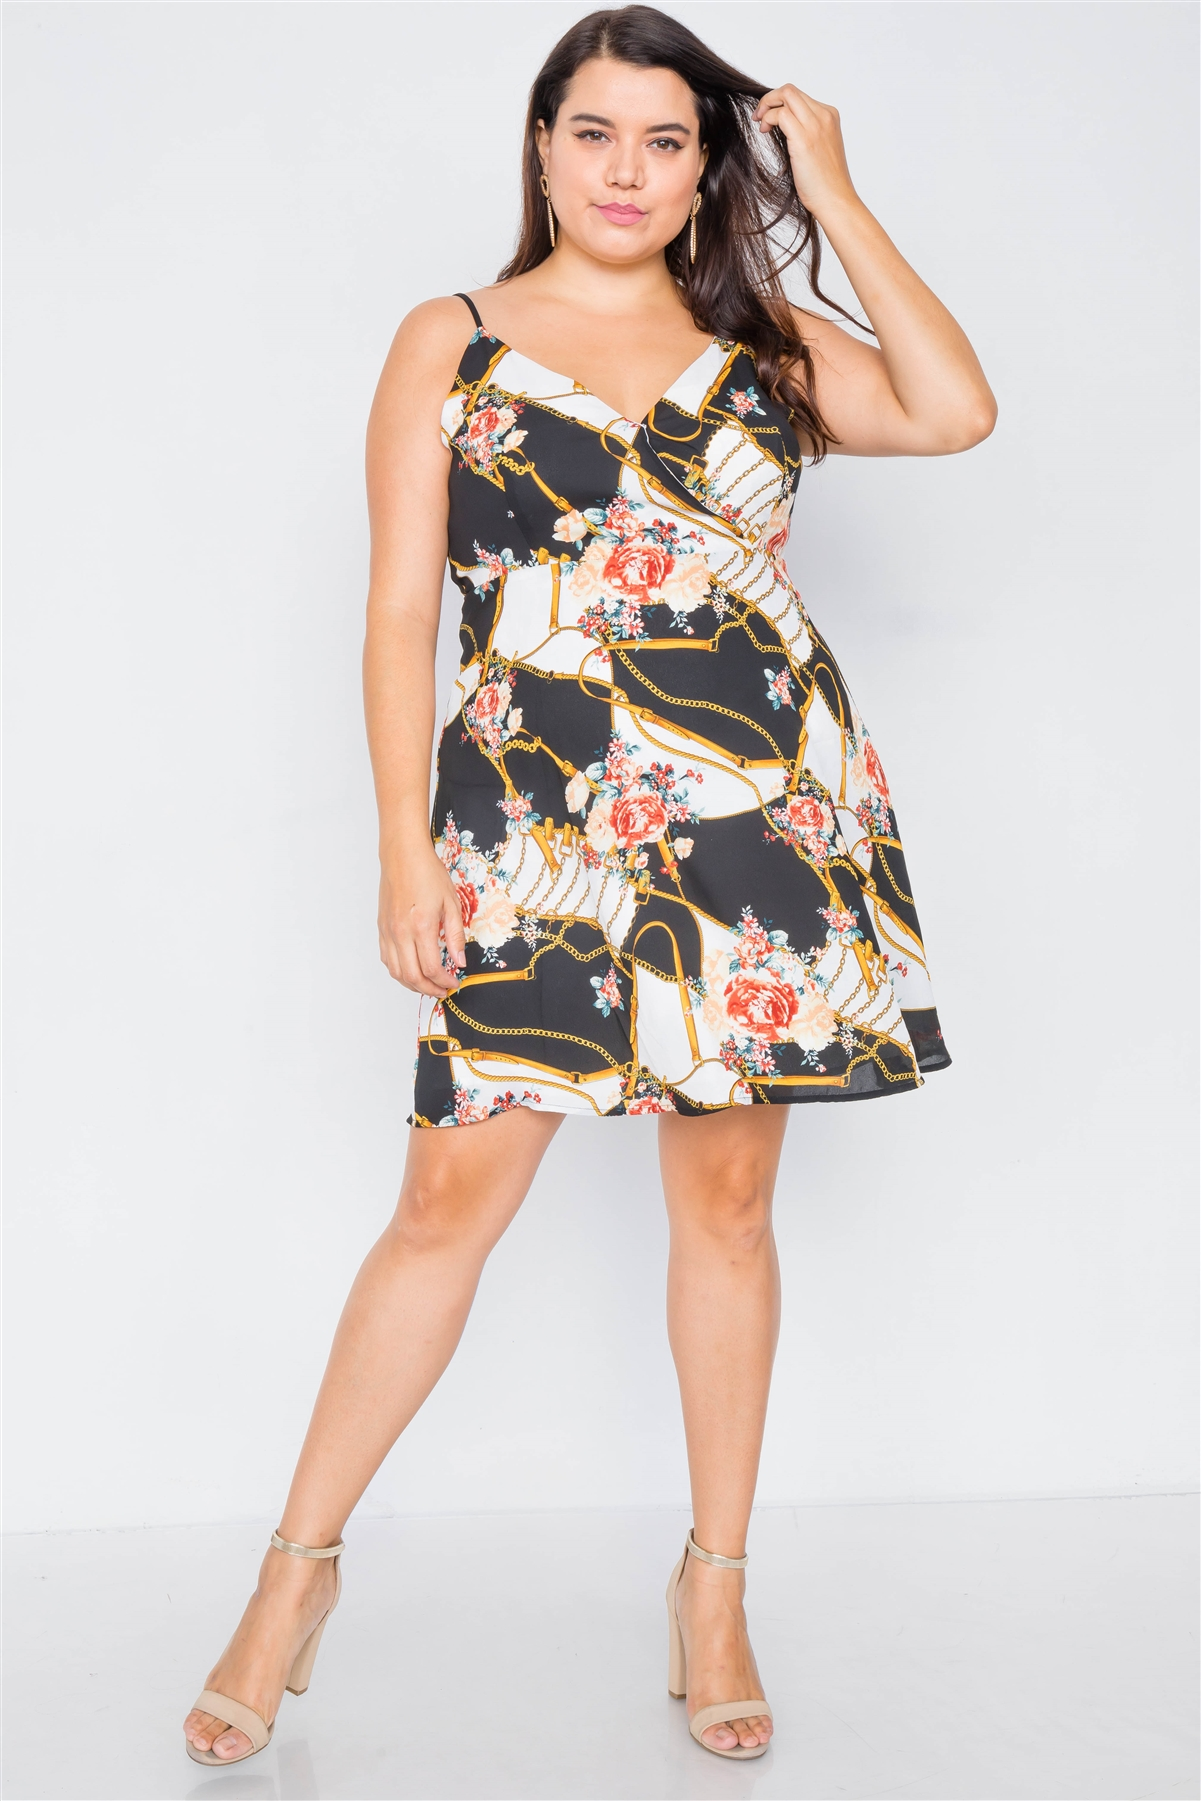 Plus Size Black Floral Belt & Chain Printed Mini Dress /1-2-2-1